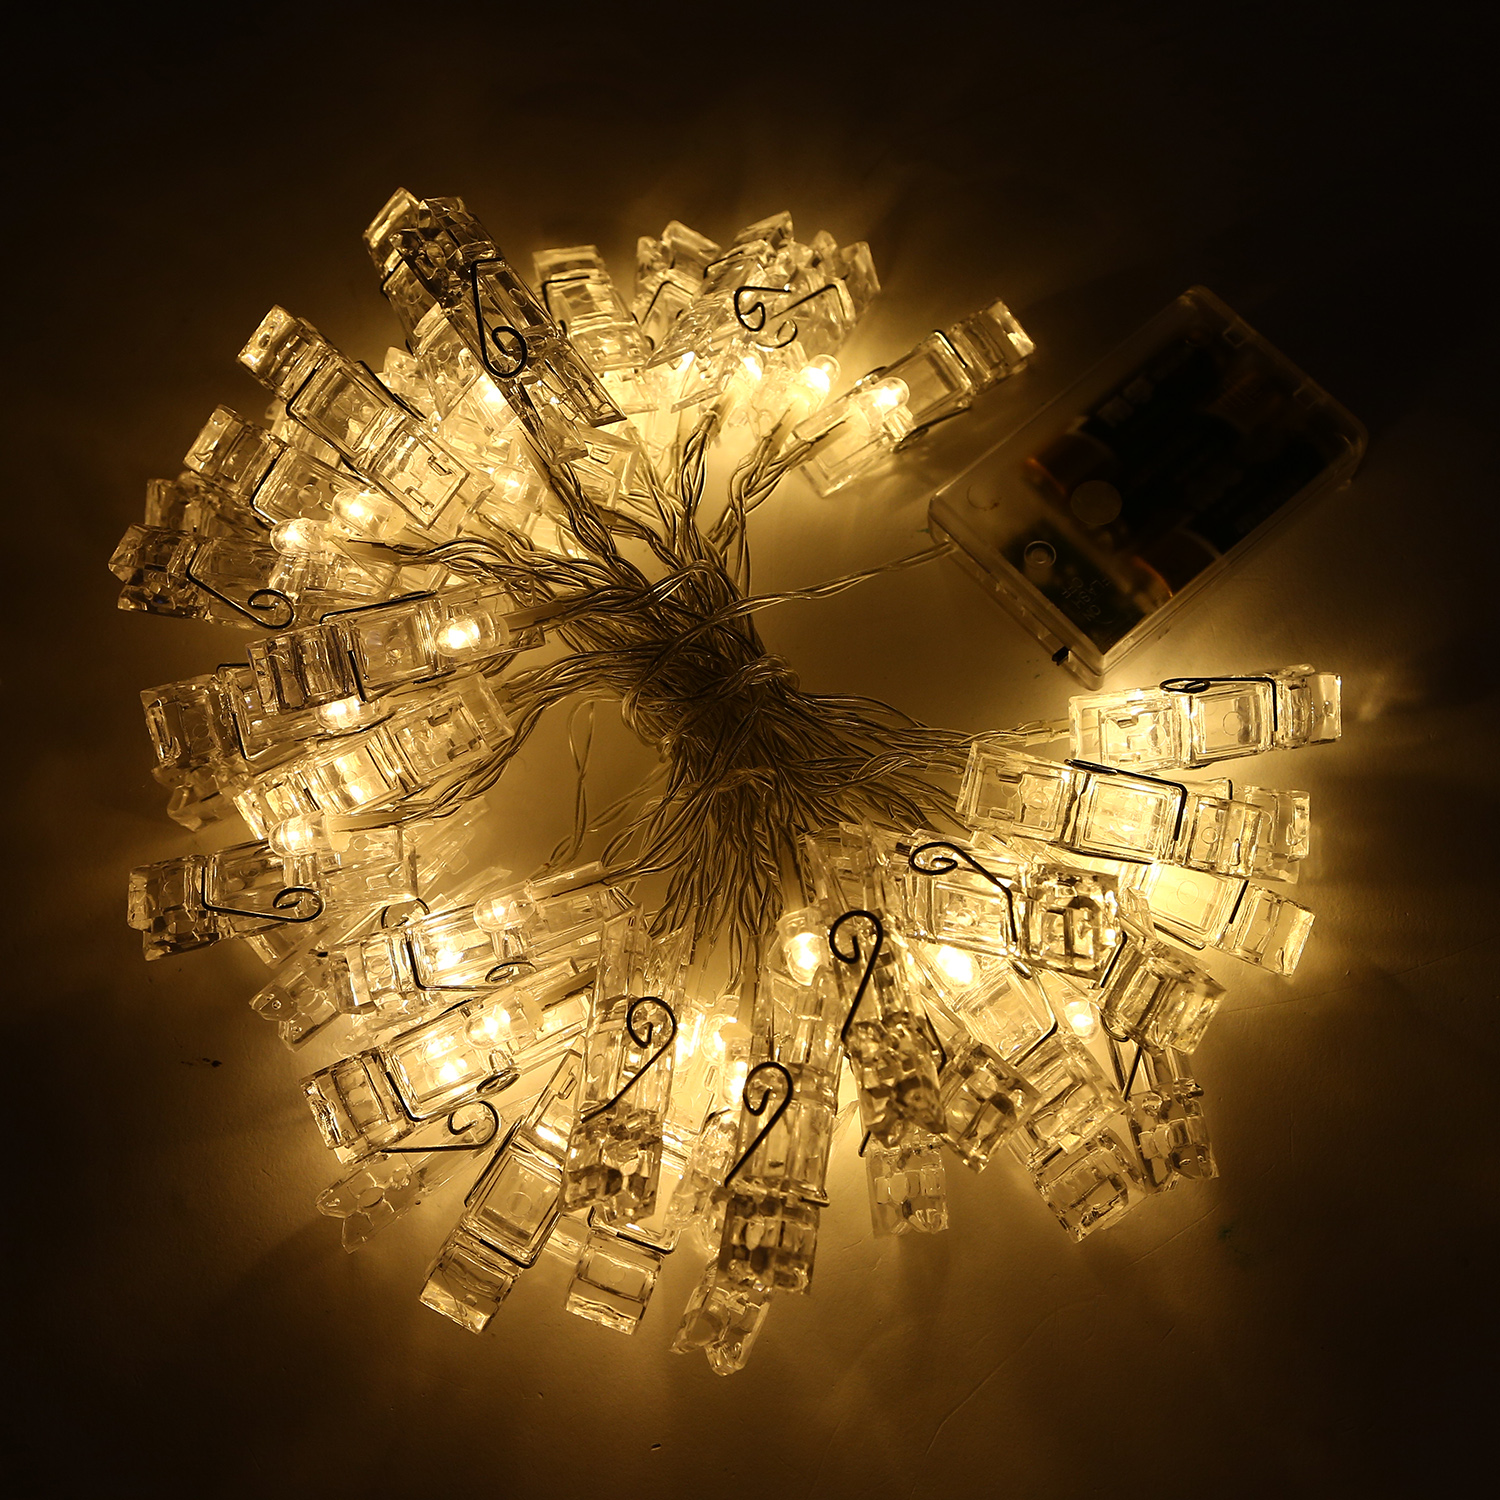 String Lights On Wall: 36 LED 4M PHOTO CLIP PEG FAIRY STRING LIGHTS MOOD WALL